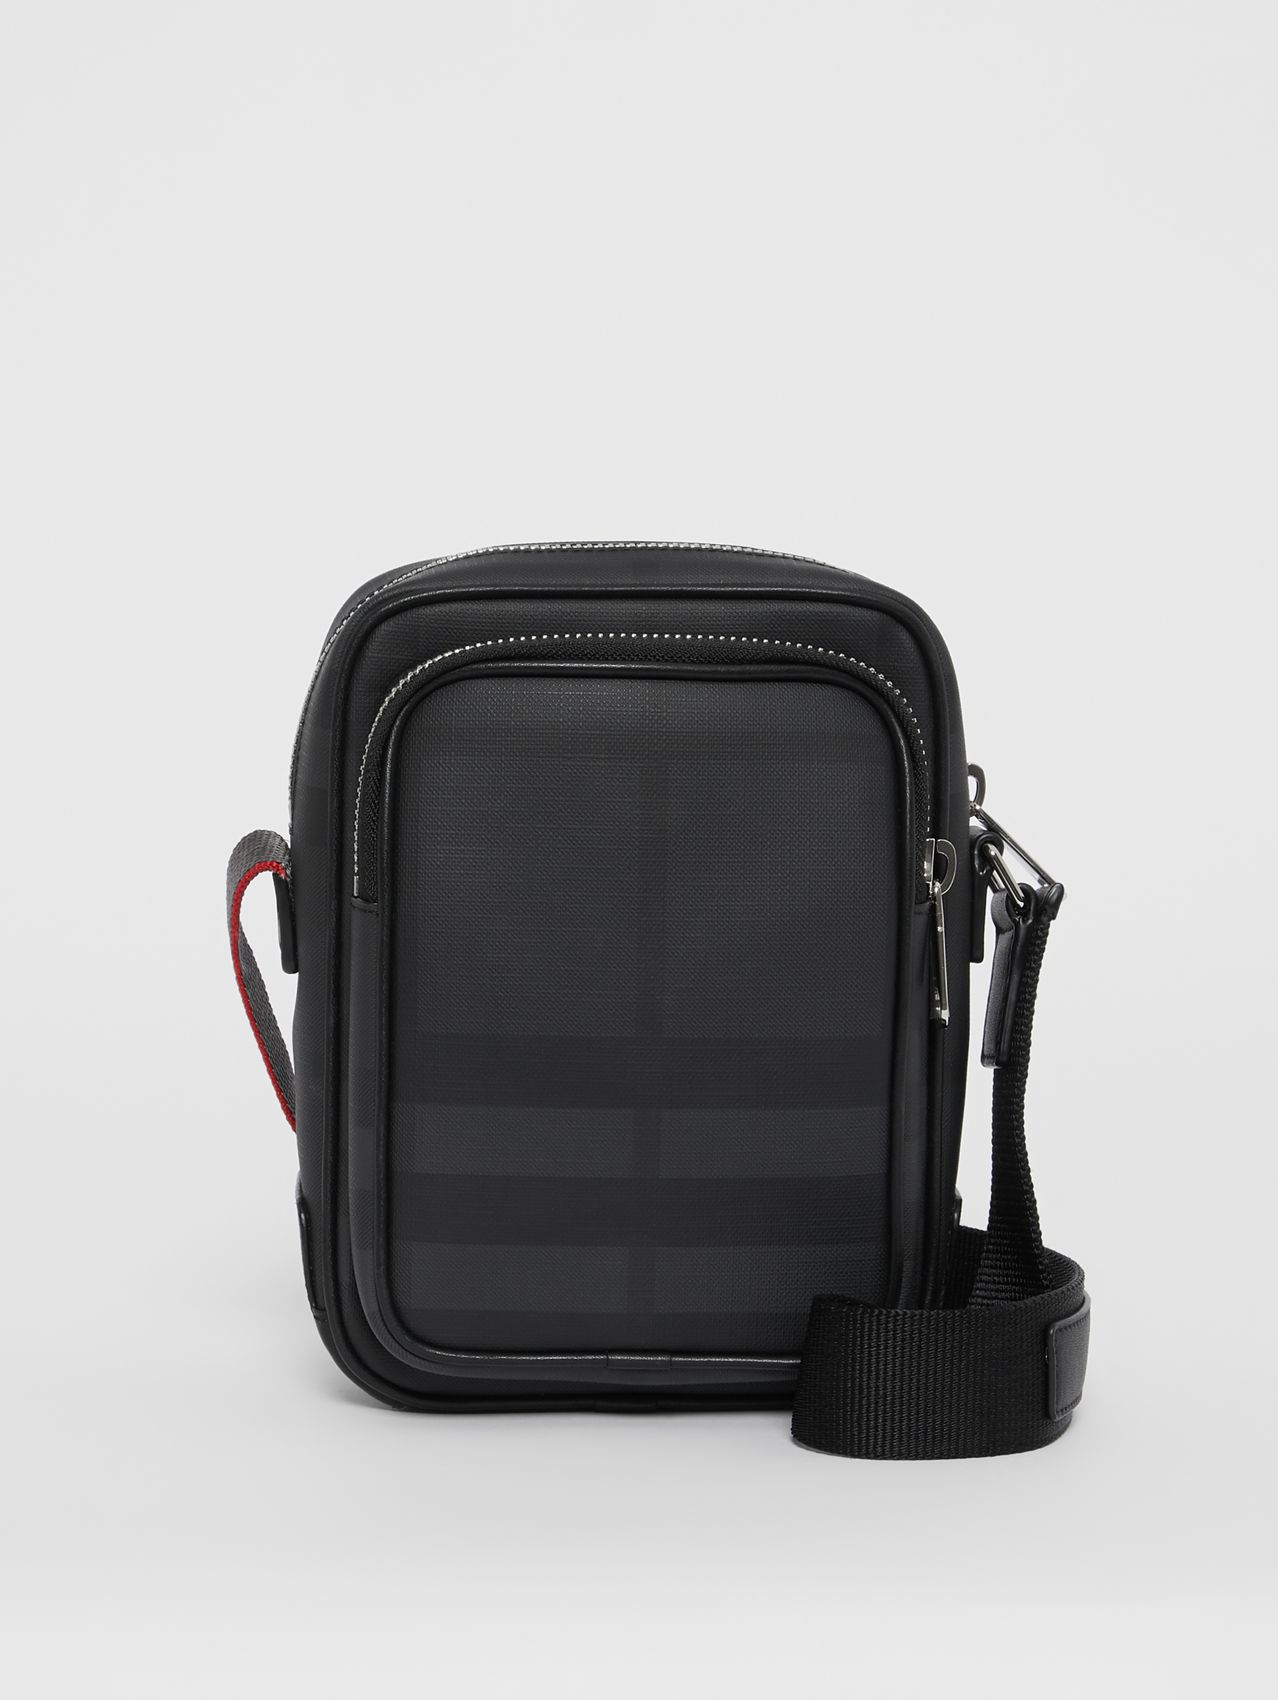 London Check and Leather Crossbody Bag in Dark Charcoal